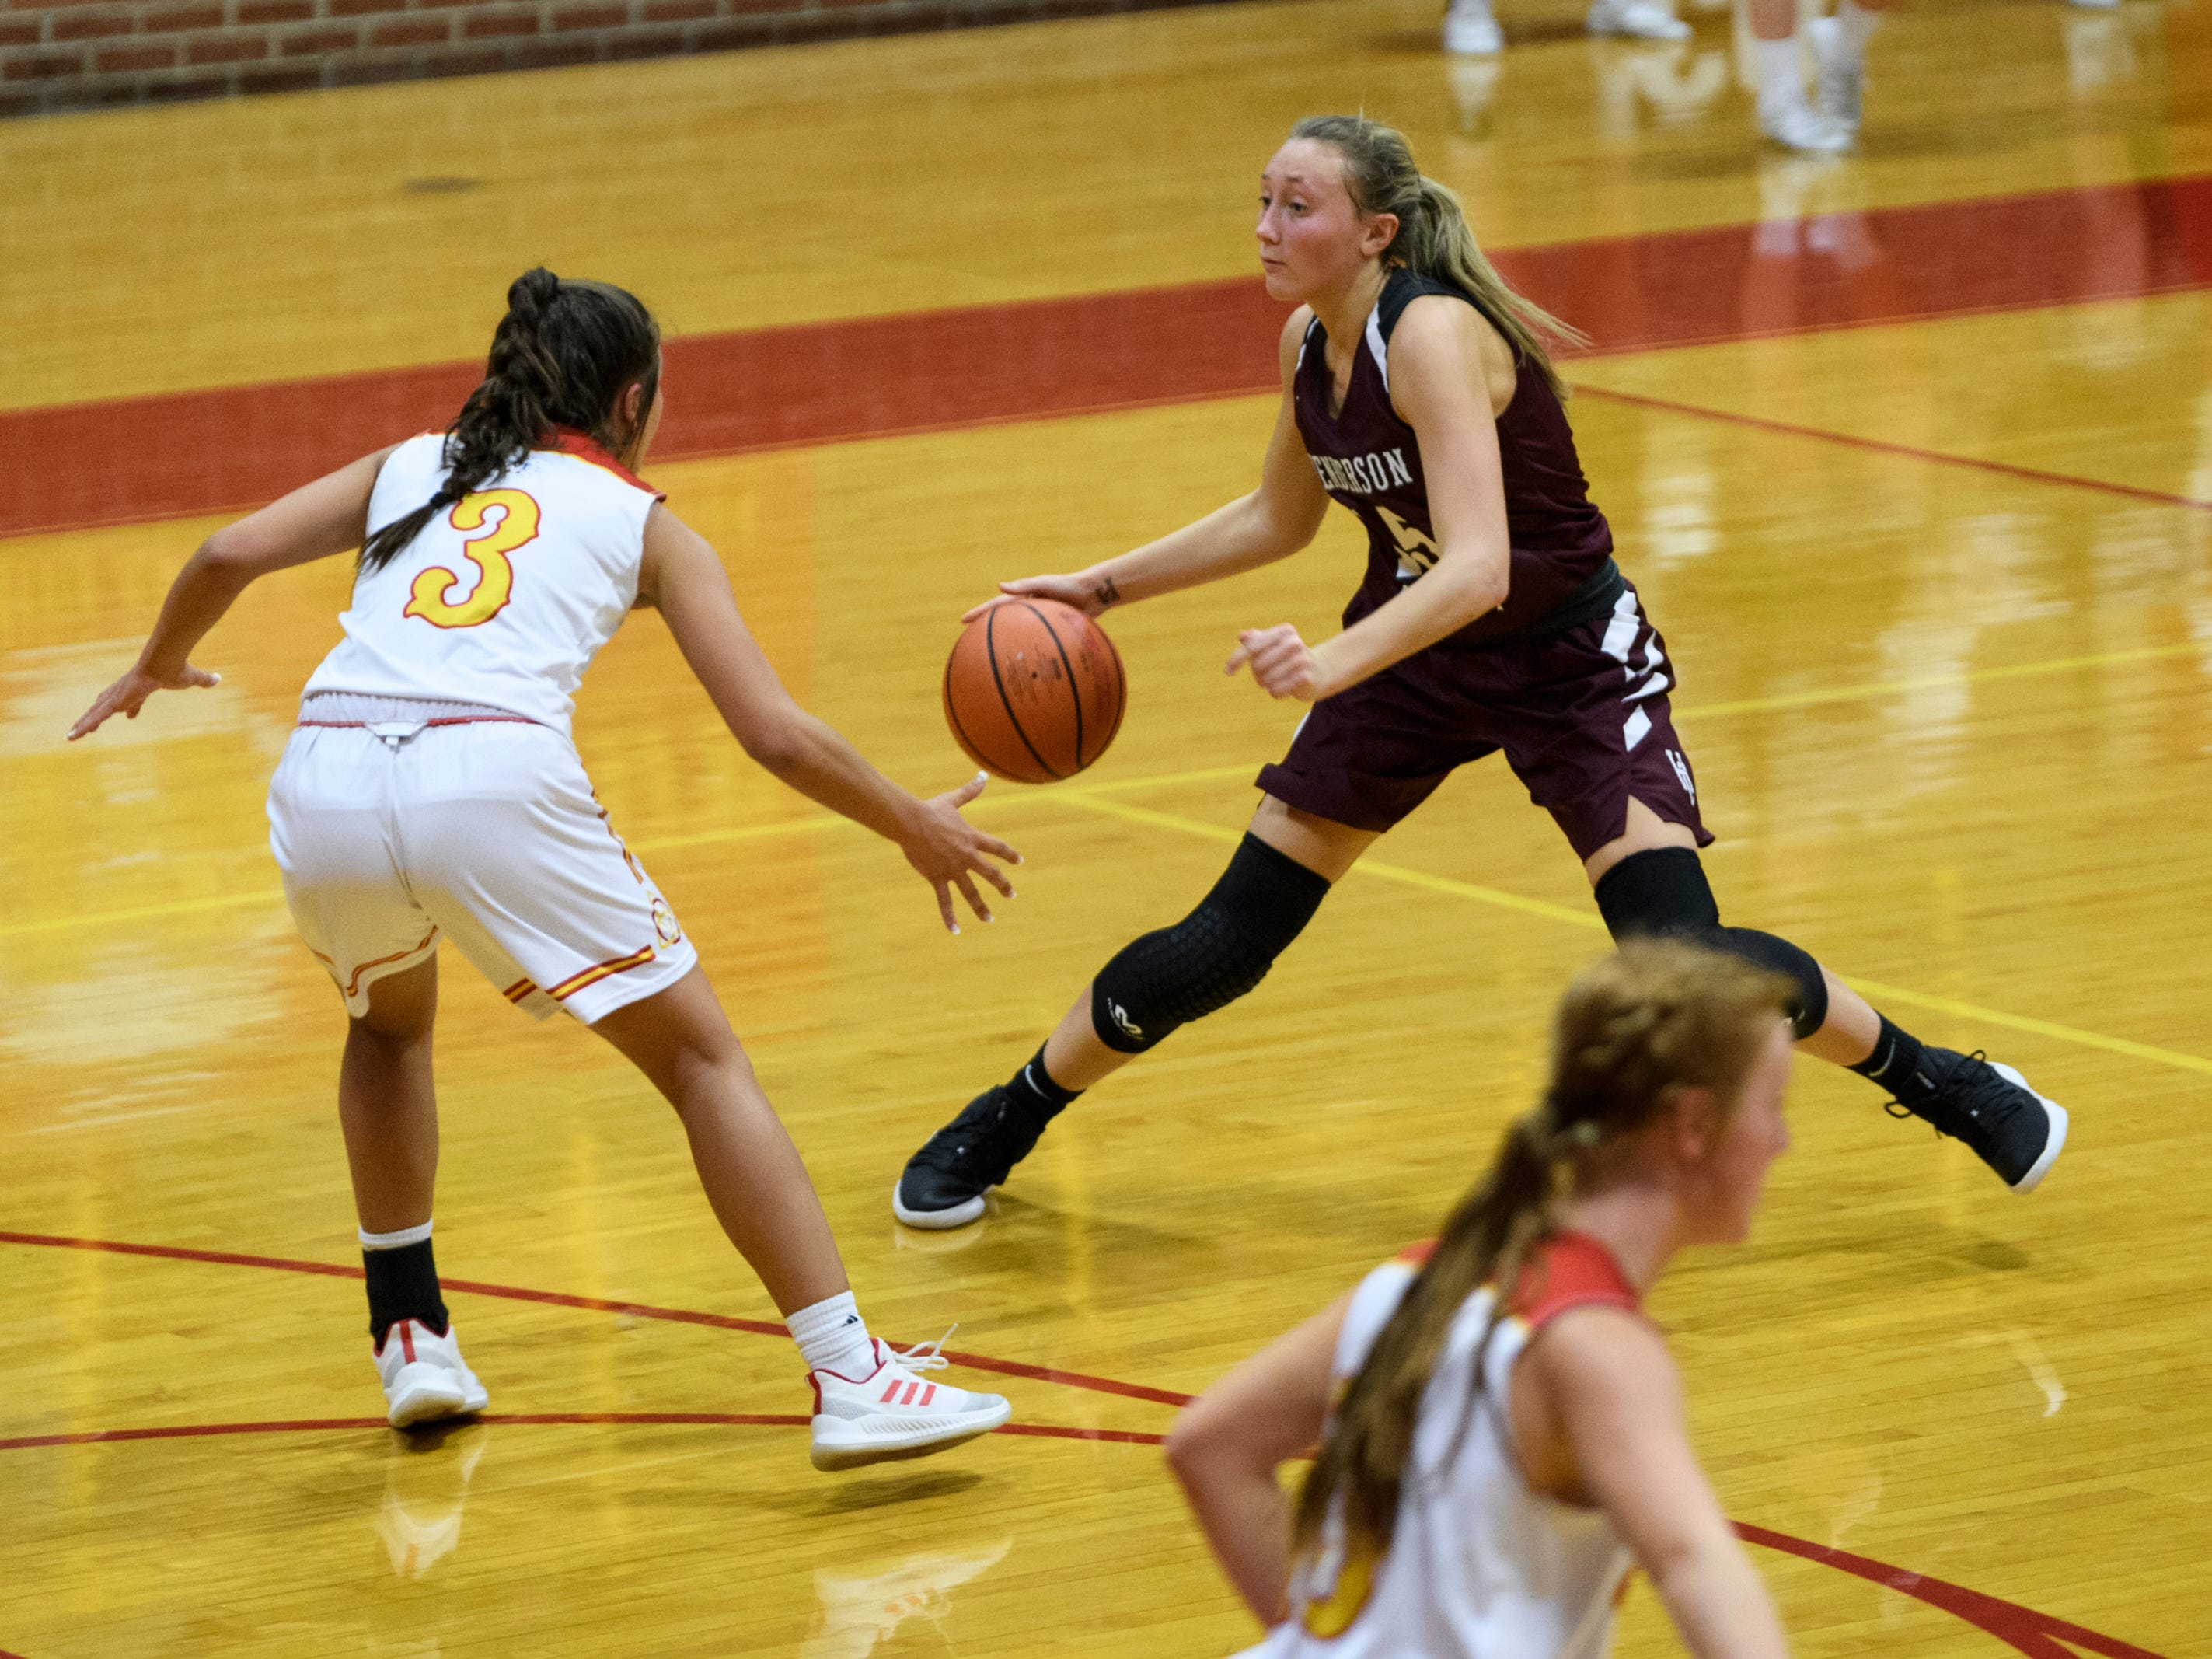 Mater Dei's Hannah Winiger (3) guards Henderson County's Alyssa Dickson (15) during the second quarter at Mater Dei High School in Evansville, Tuesday, Dec. 11, 2018. The Lady Colonels defeated the Wildcats 53-40.